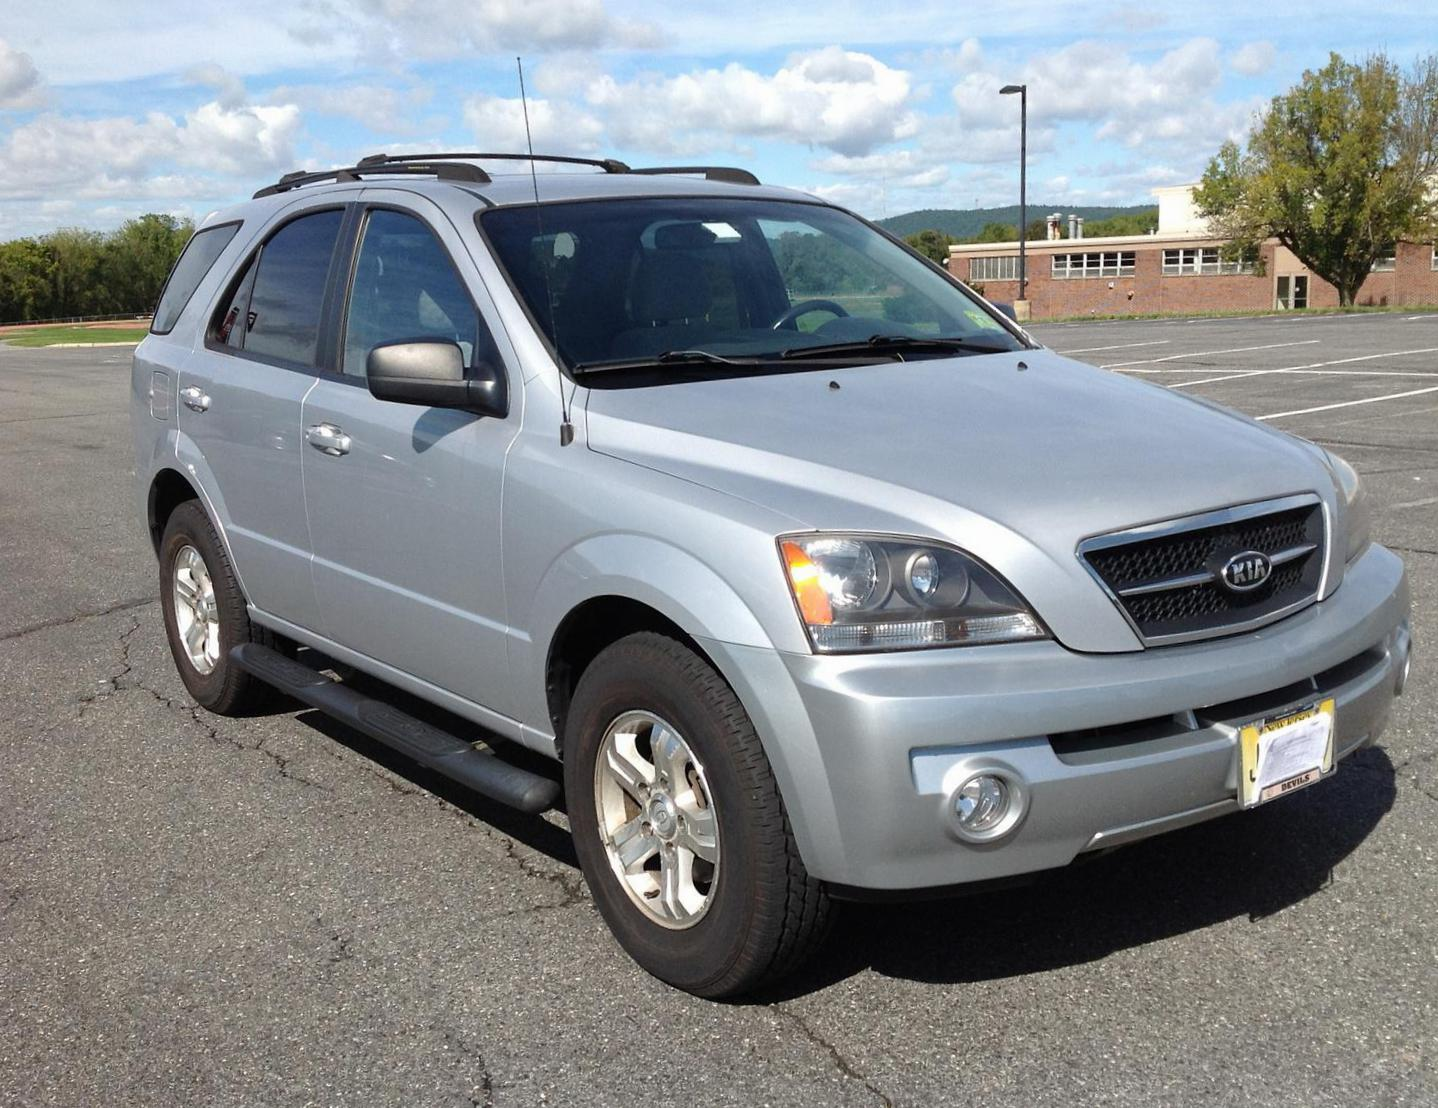 Sorento KIA usa liftback